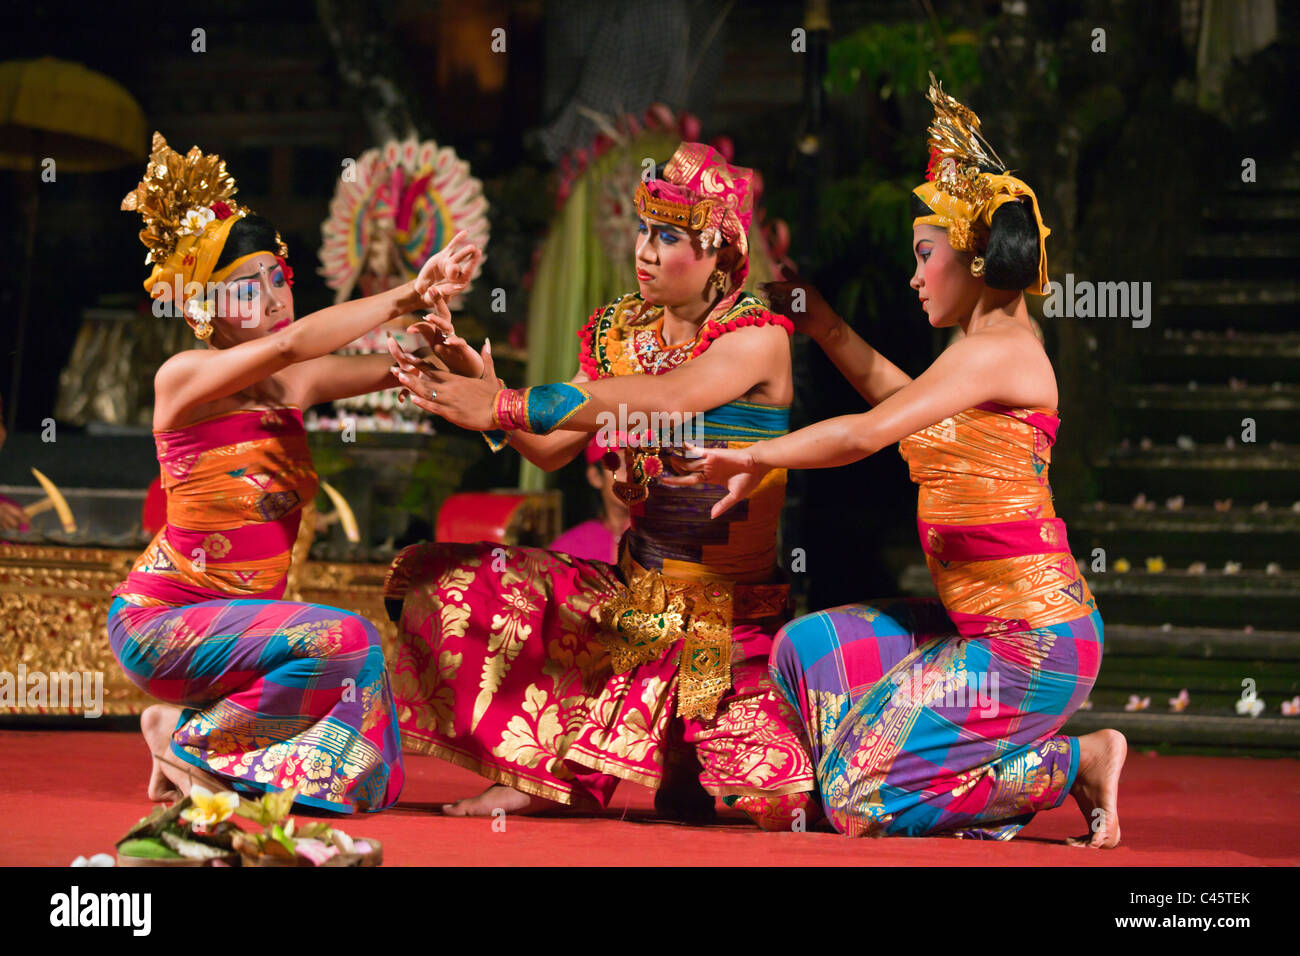 The FISHERMAN DANCE is performed by the Cenik Wayah Gamelan Dance Group at PURA TAMAN SARASWATI - UBUD, BALI, INDONESIA - Stock Image